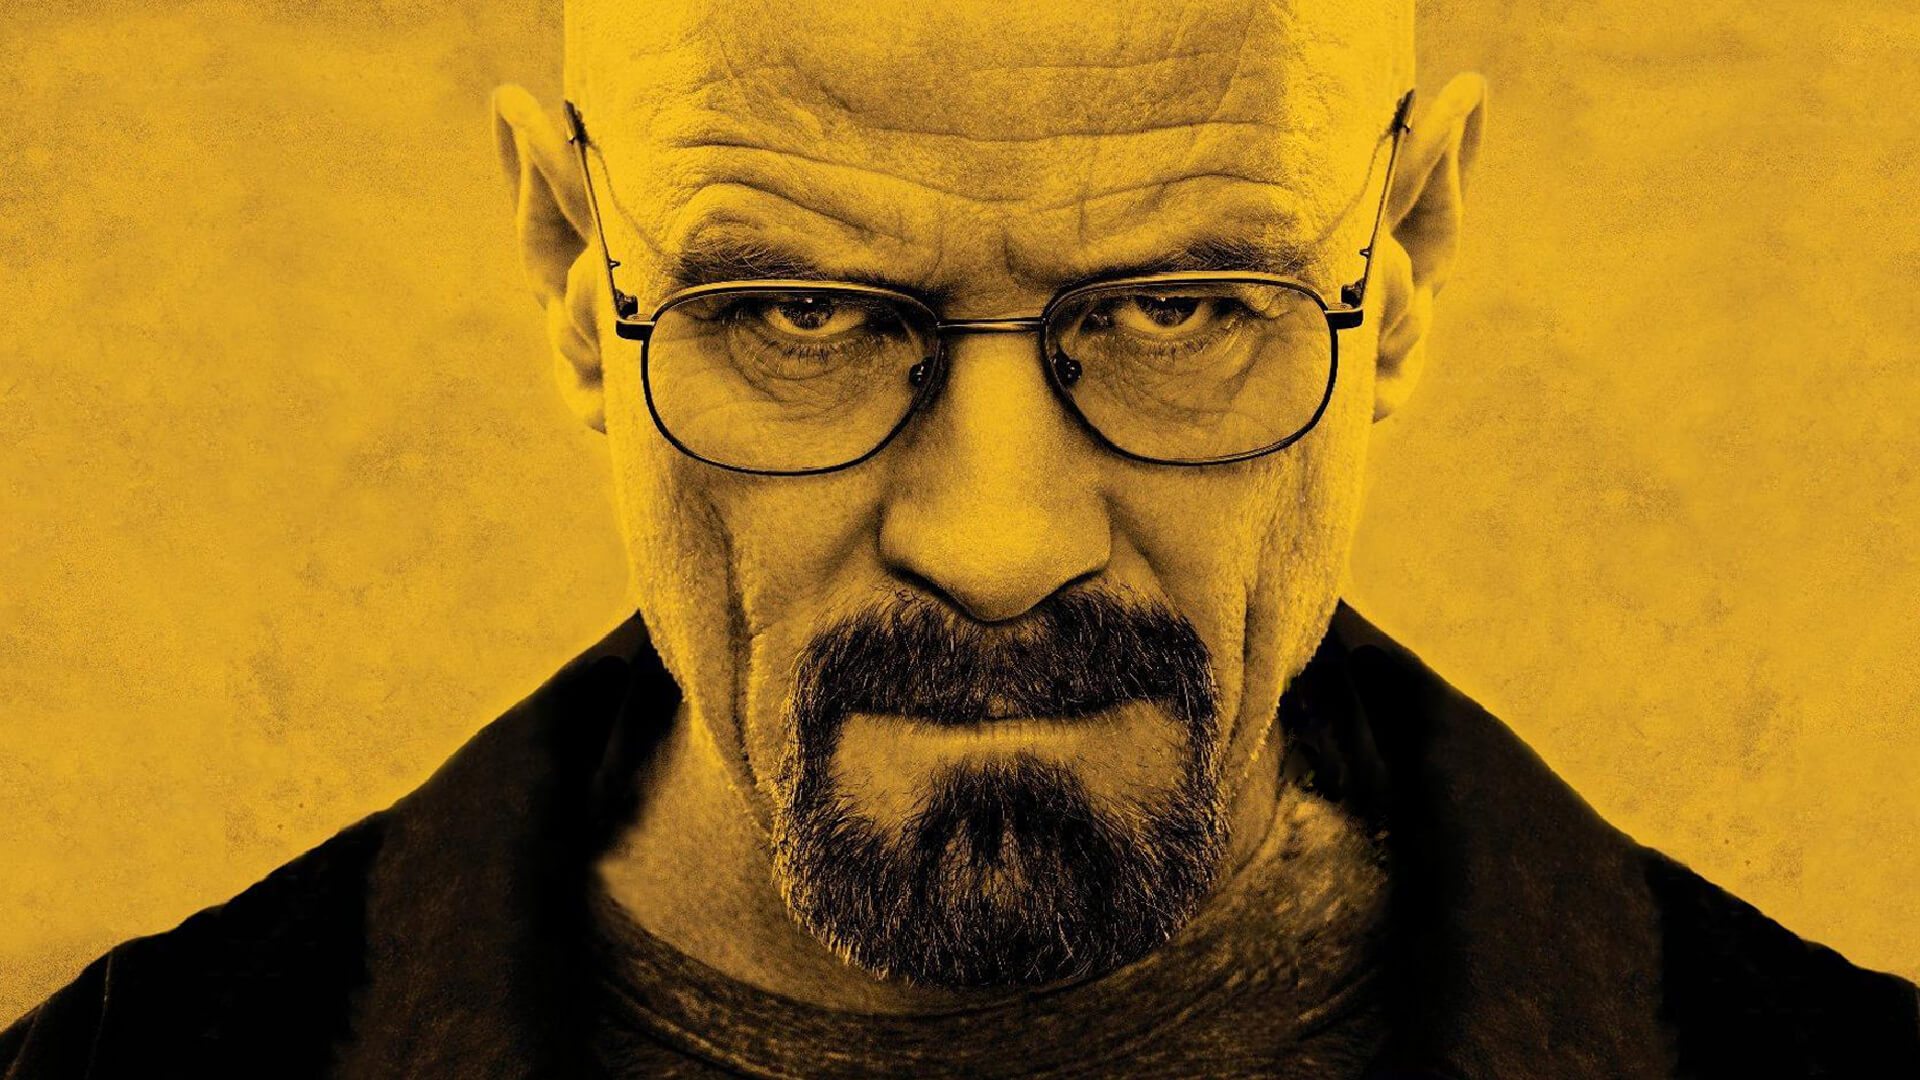 Breaking Bad Movie Cast List Leaked, Includes Bryan Cranston